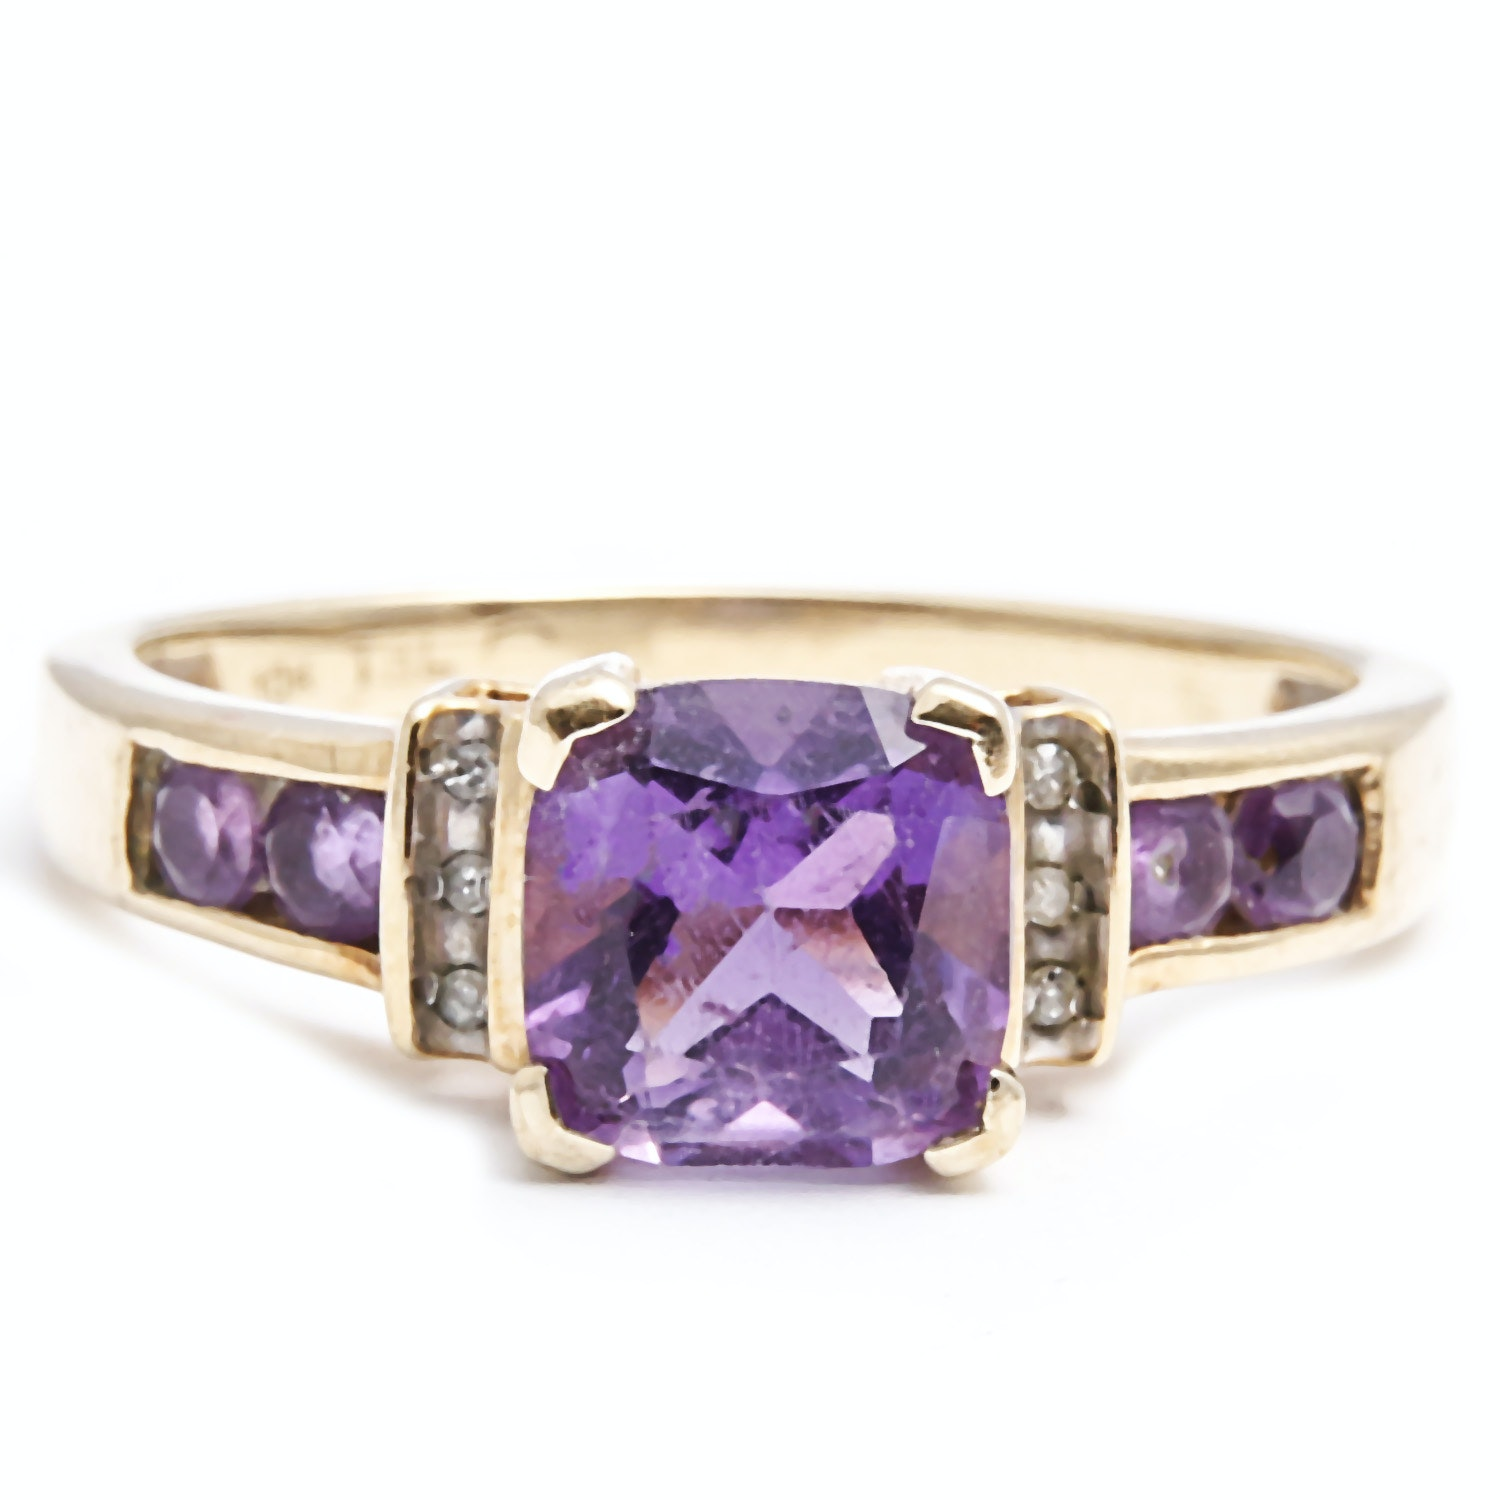 10K Gold Amethyst and Diamond Ring